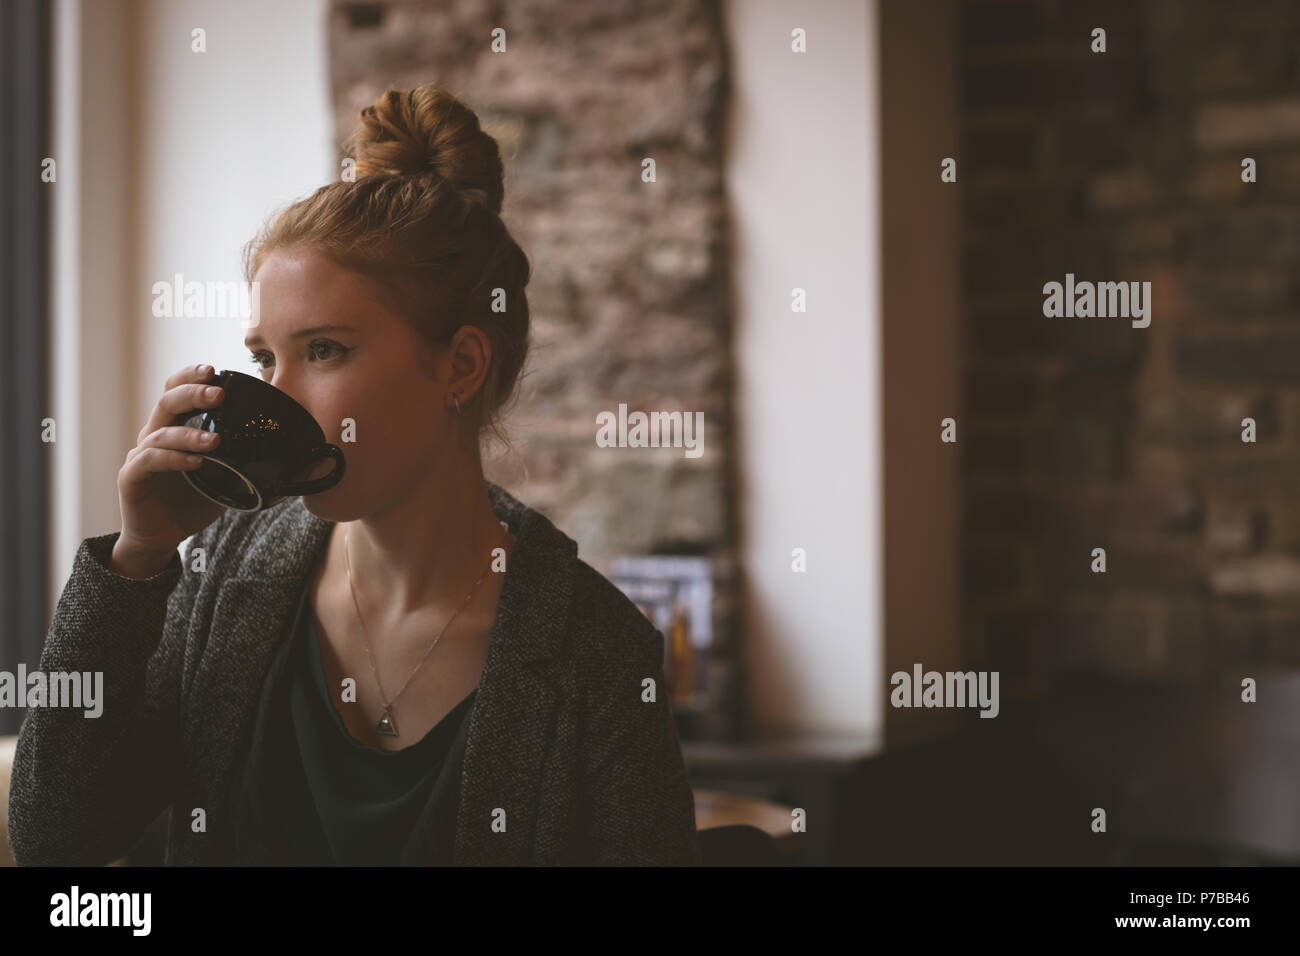 Woman having coffee at cafe Stock Photo